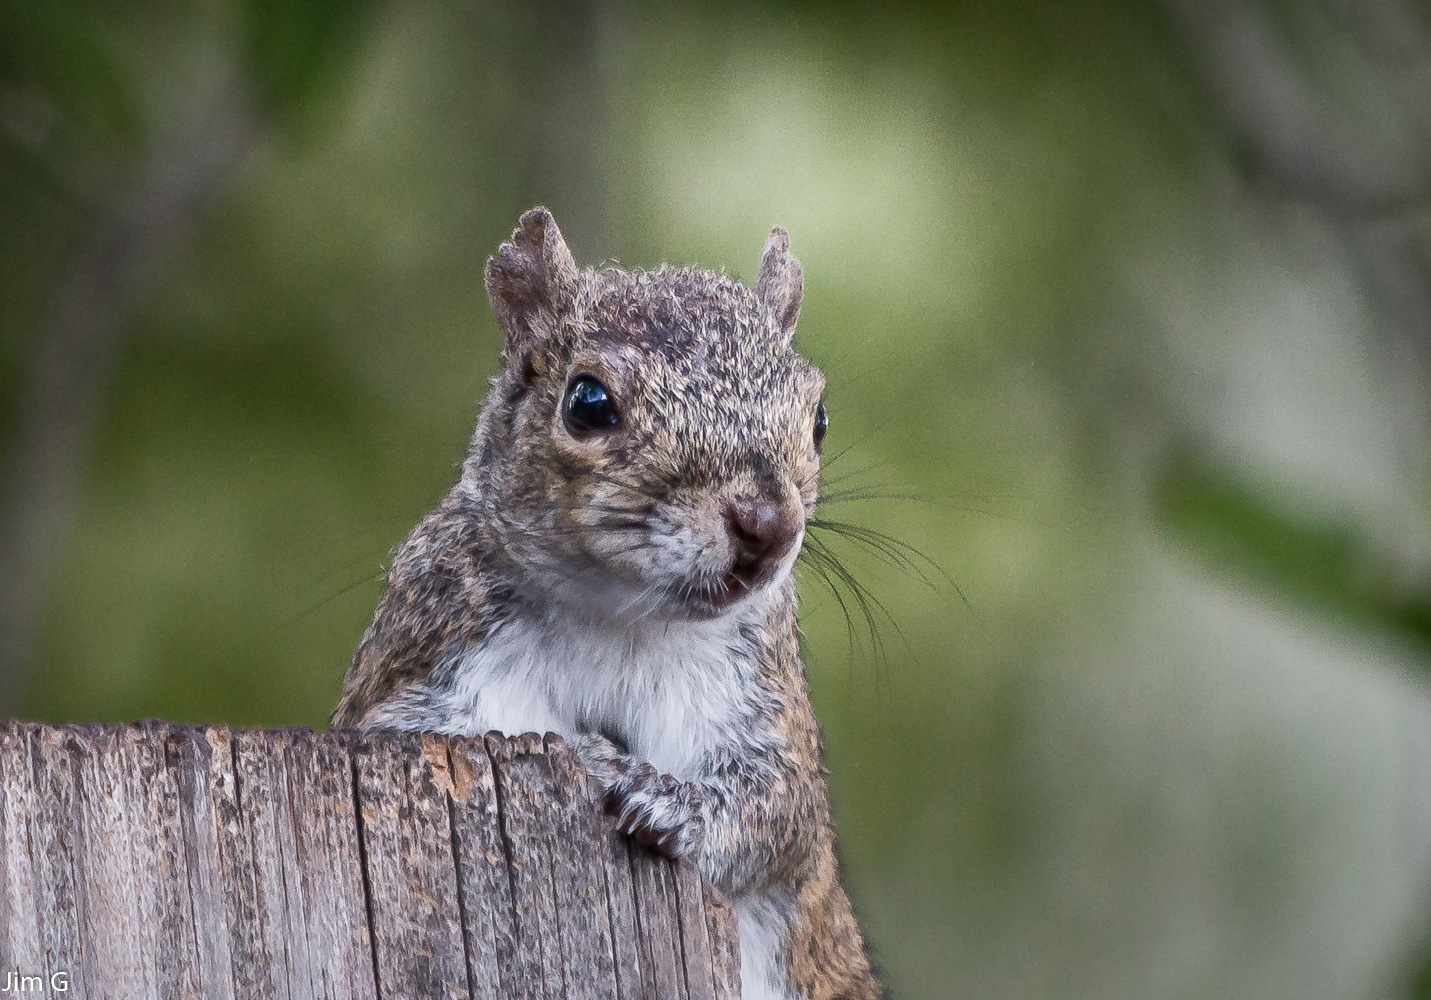 Young Squirrel Close-Up by Jim Graham